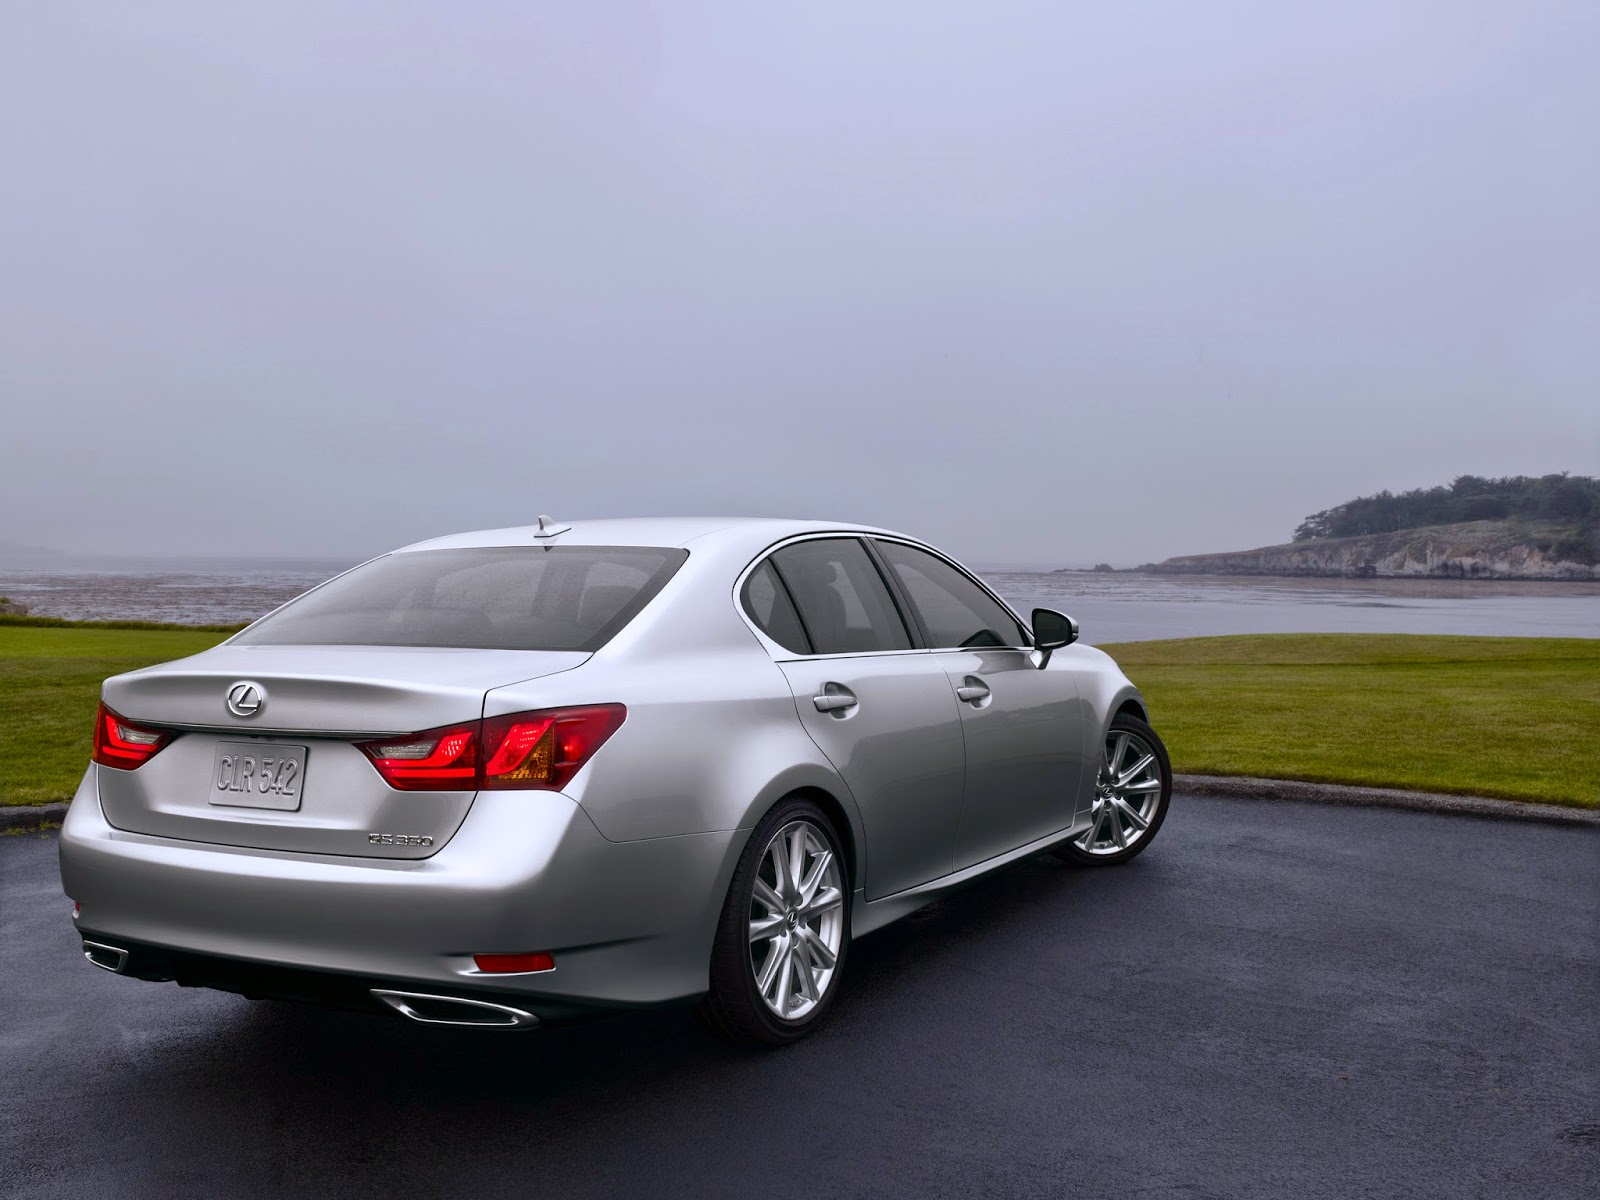 Rear 3/4 view of 2014 Lexus GS350